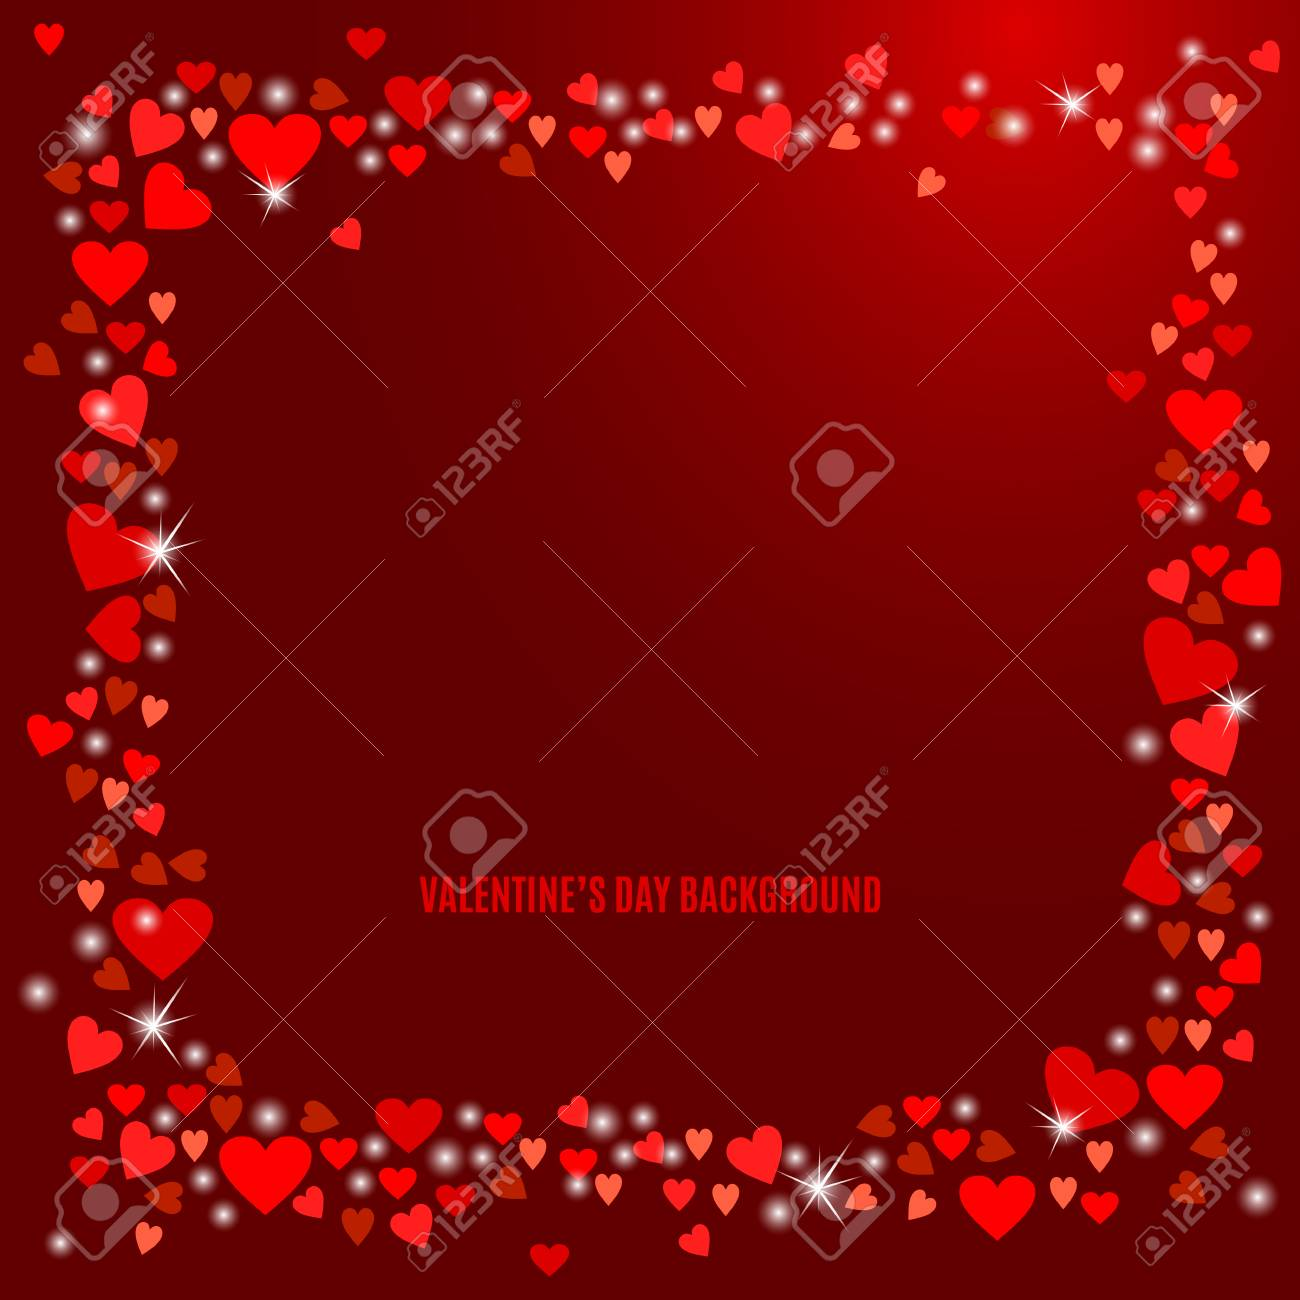 Abstract love background for your valentines day greeting card abstract love background for your valentines day greeting card design red hearts frame isolated on kristyandbryce Choice Image